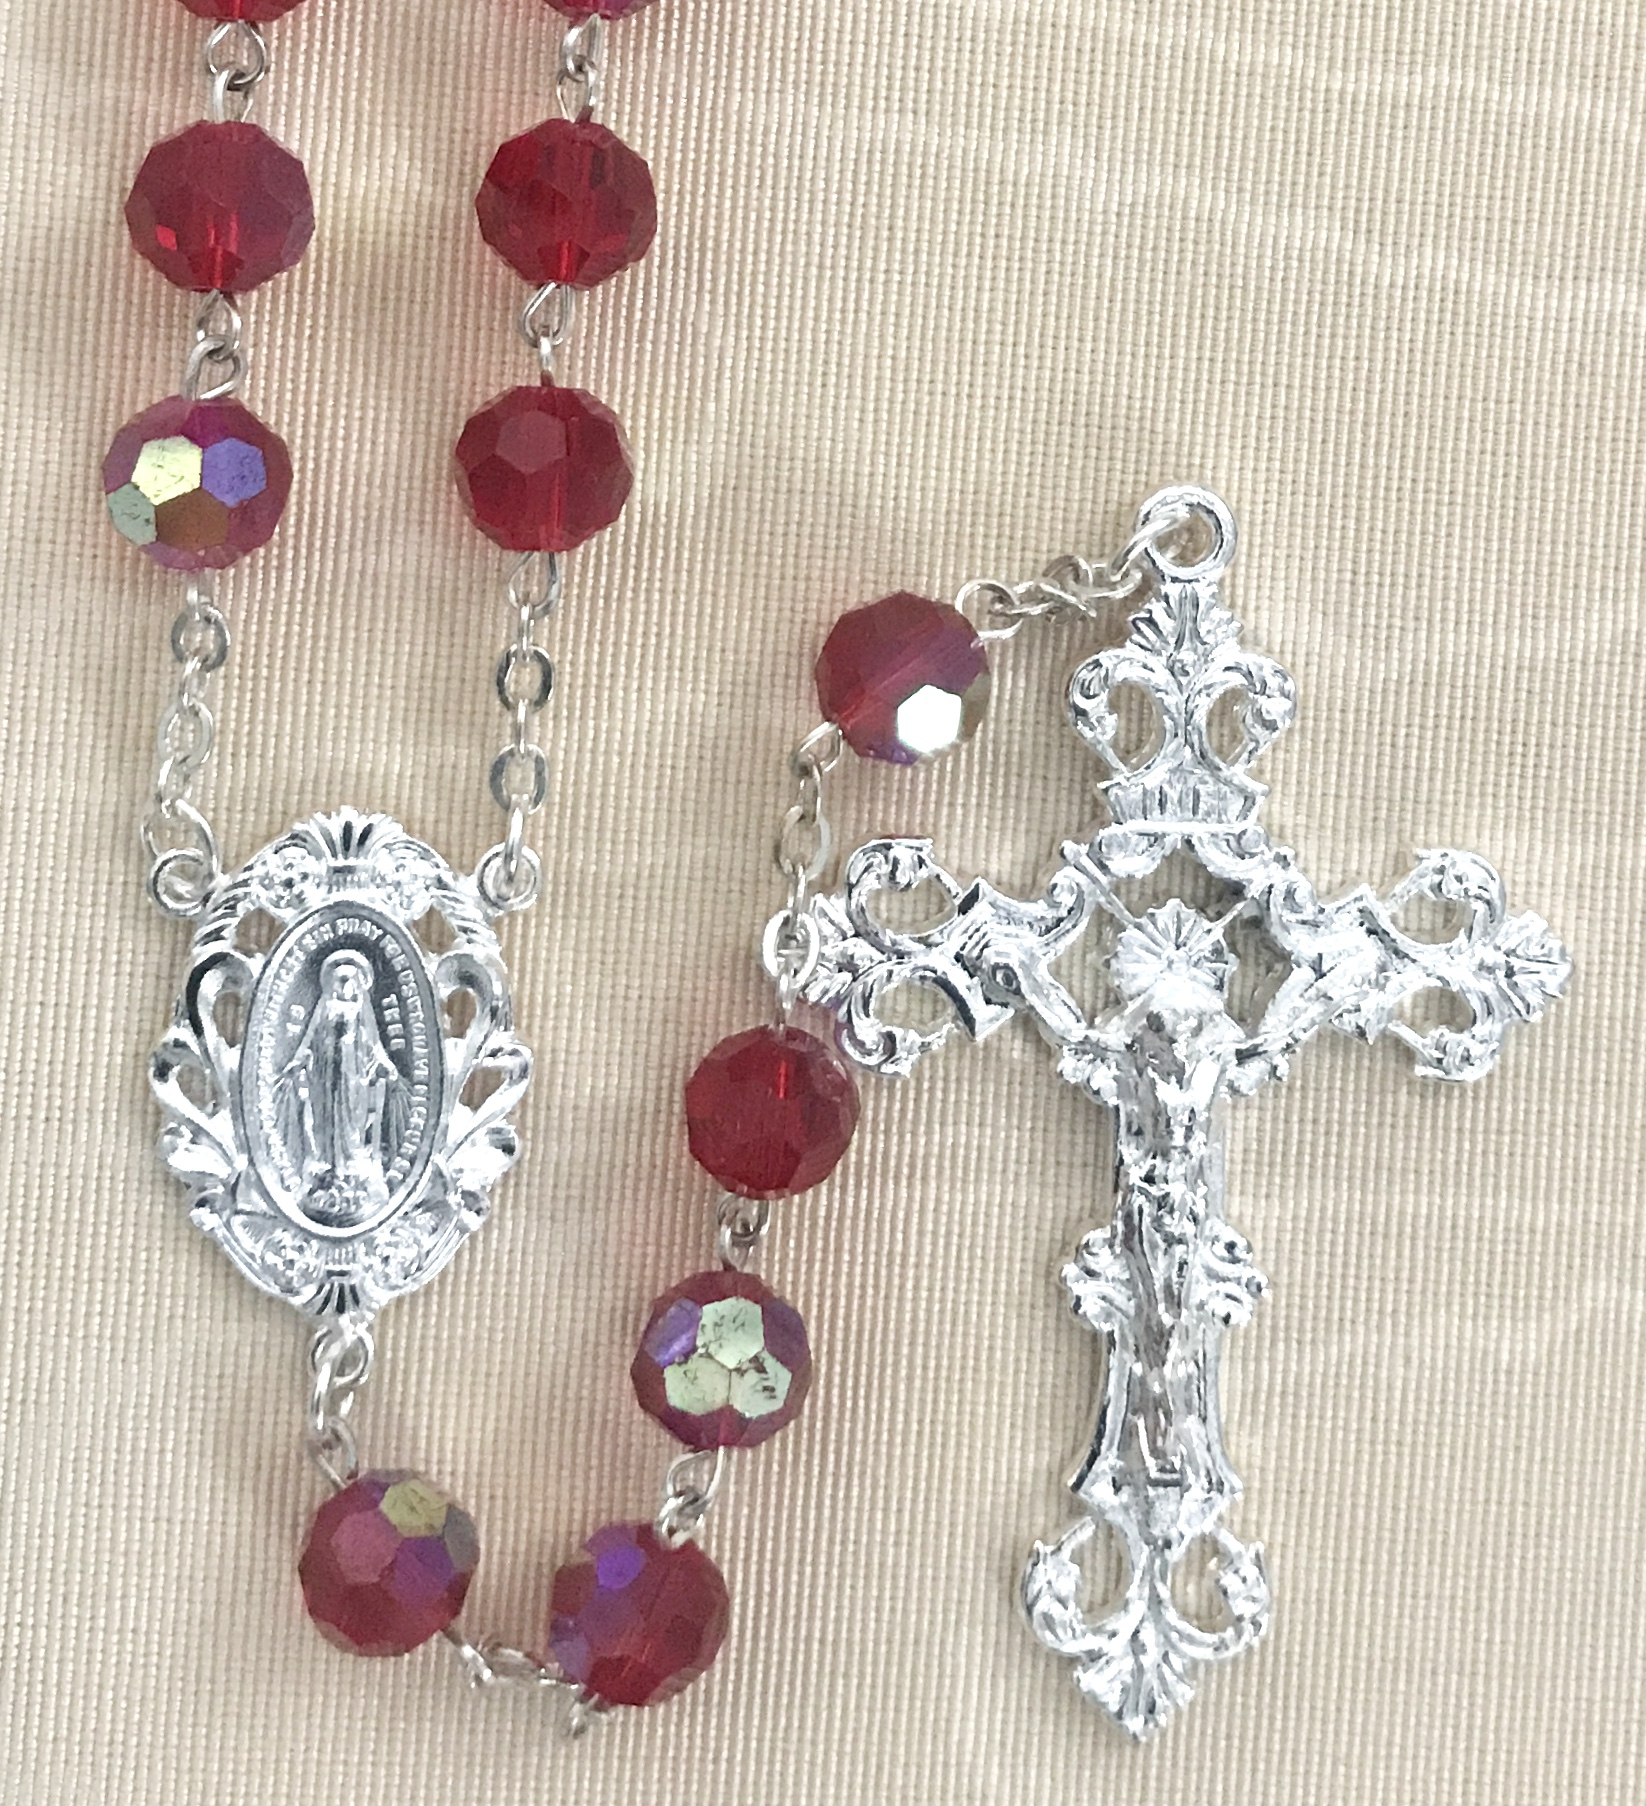 8mm RUBY TIN CUT ROSARY WITH STERLING SILVER PLATED CRUCIFIX AND CENTER GIFT BOXED